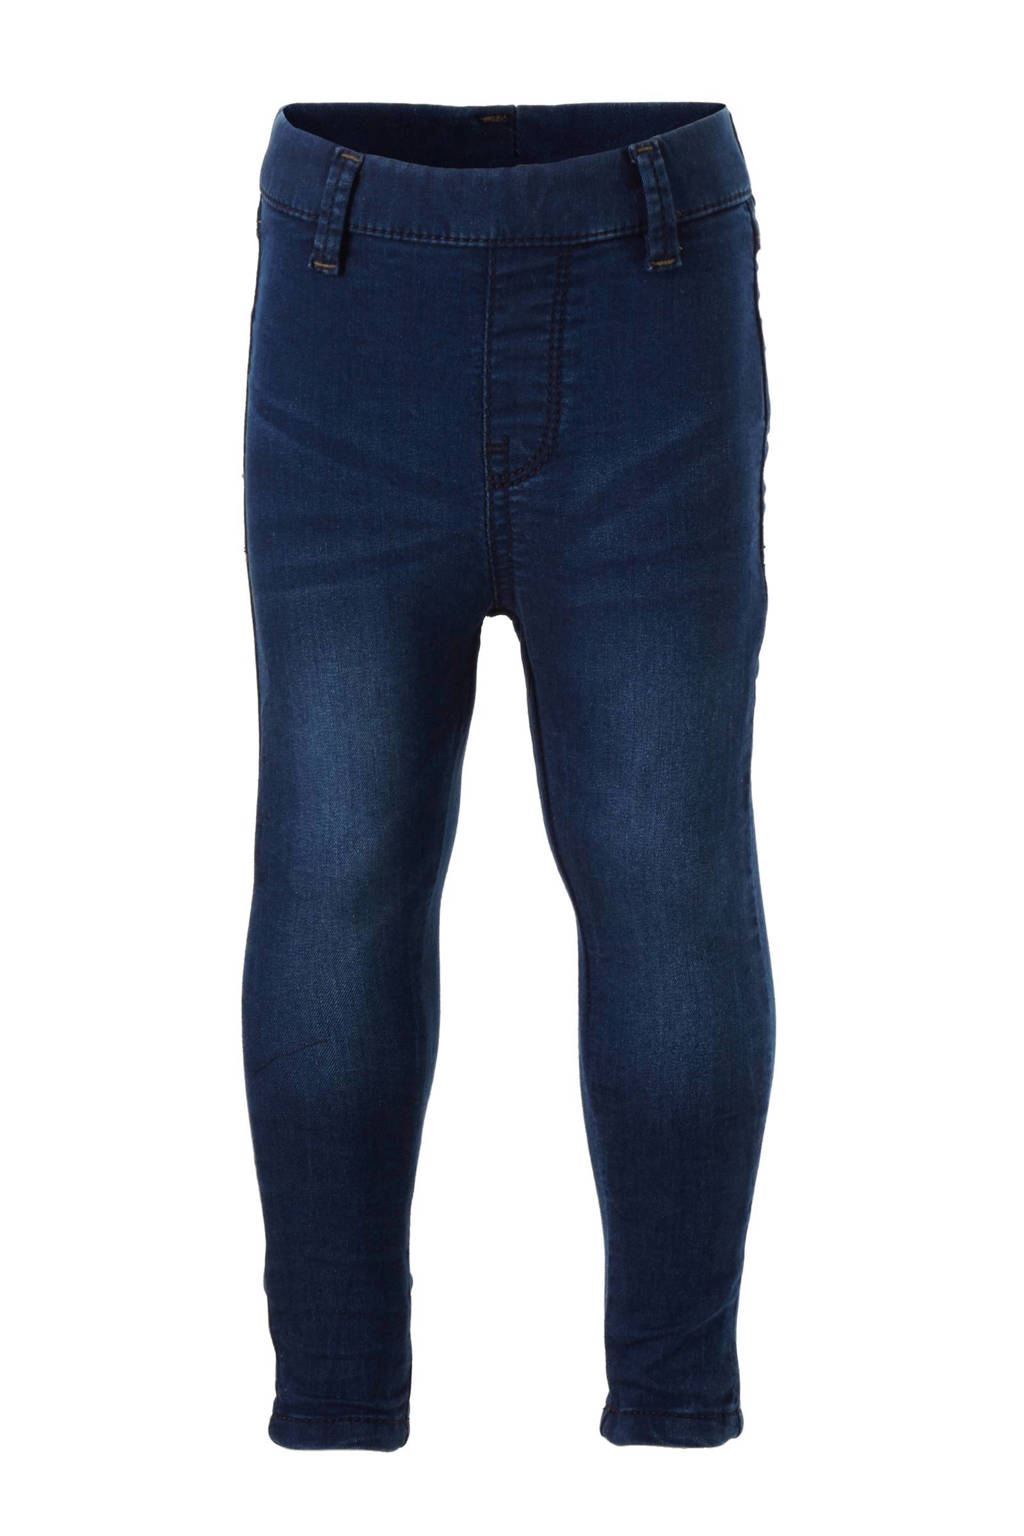 Noppies jegging Noves, Dark wash denim